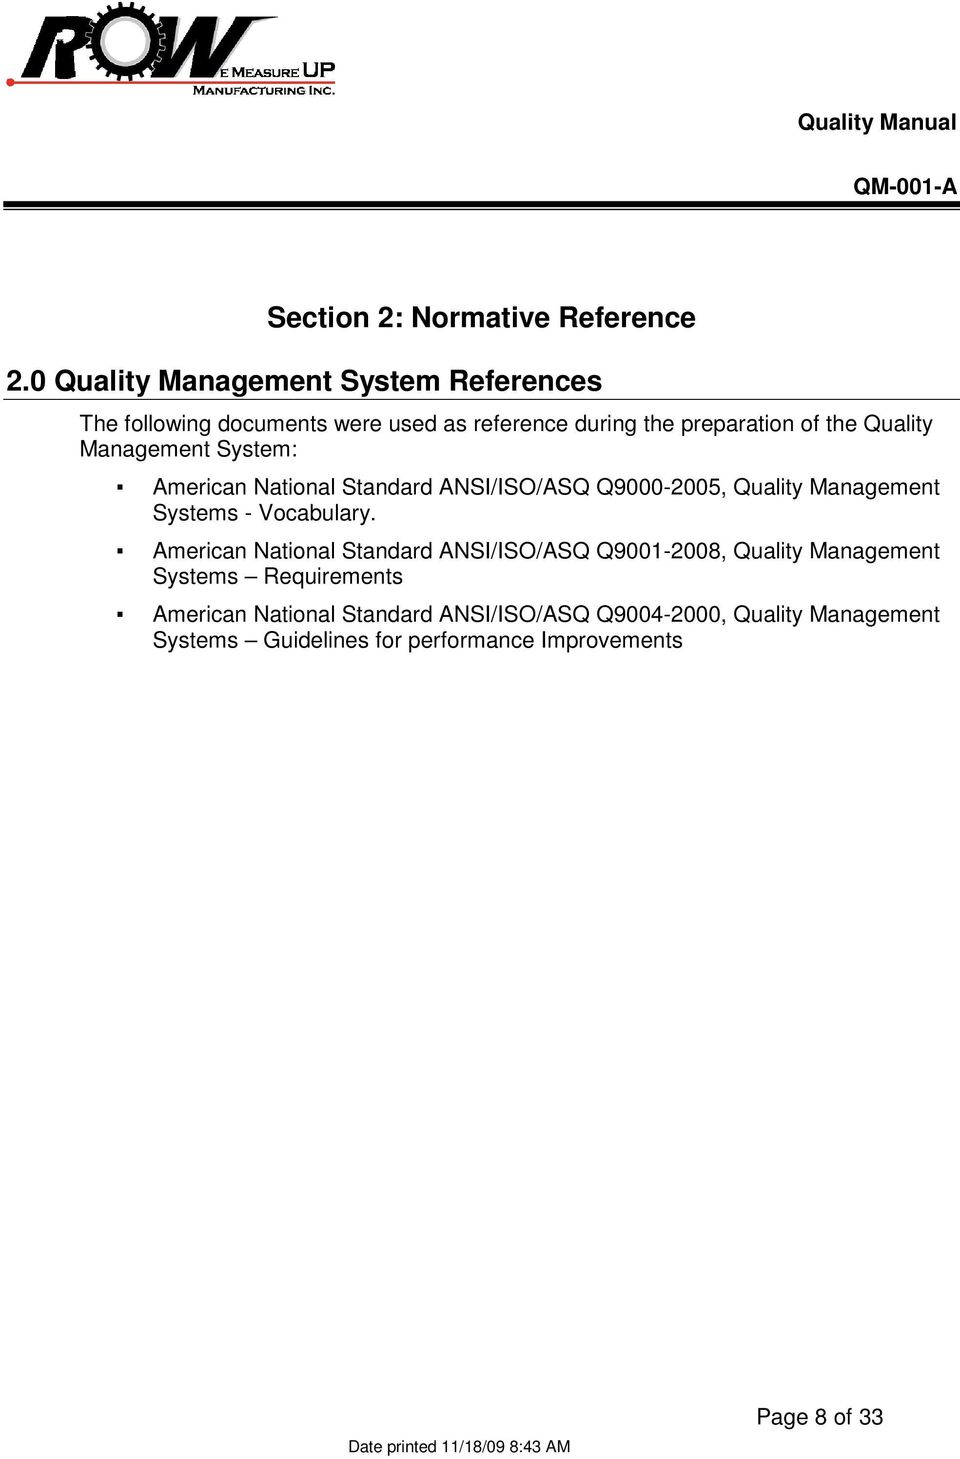 Quality Management System: American National Standard ANSI/ISO/ASQ Q9000-2005, Quality Management Systems - Vocabulary.